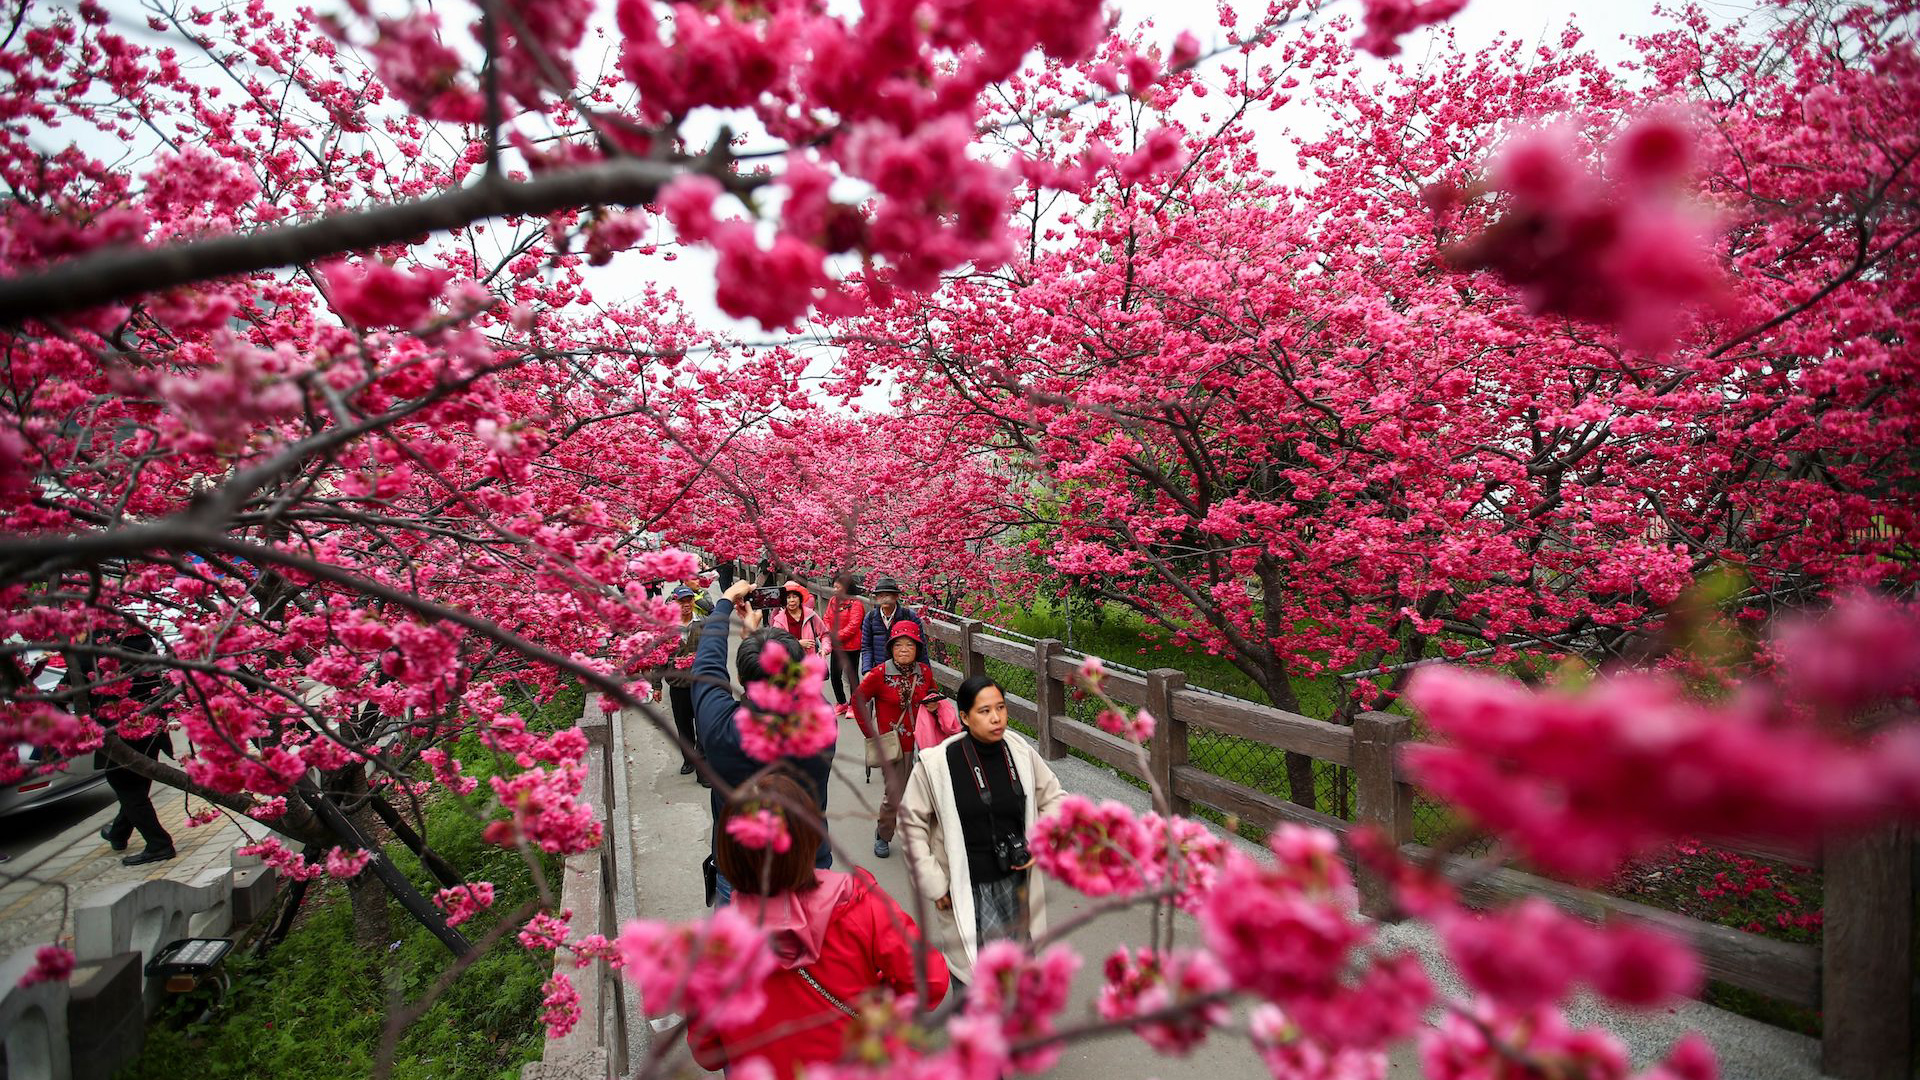 These Are The Peak Bloom Dates For Cherry Blossoms In D C The